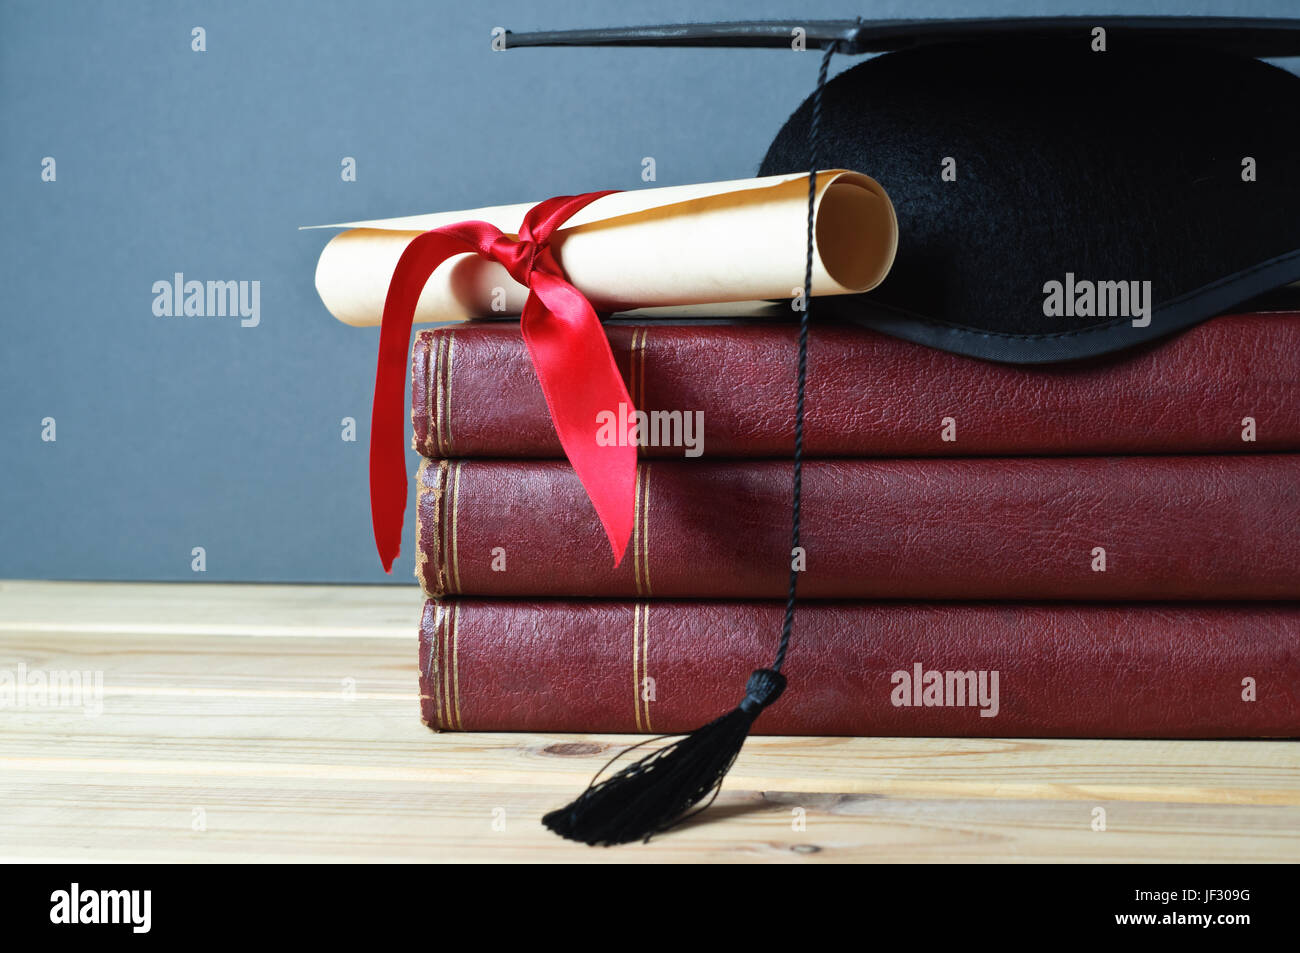 Graduation mortarboard and scroll tied with red ribbon on top of a stack of old, worn books on a light wood table. - Stock Image